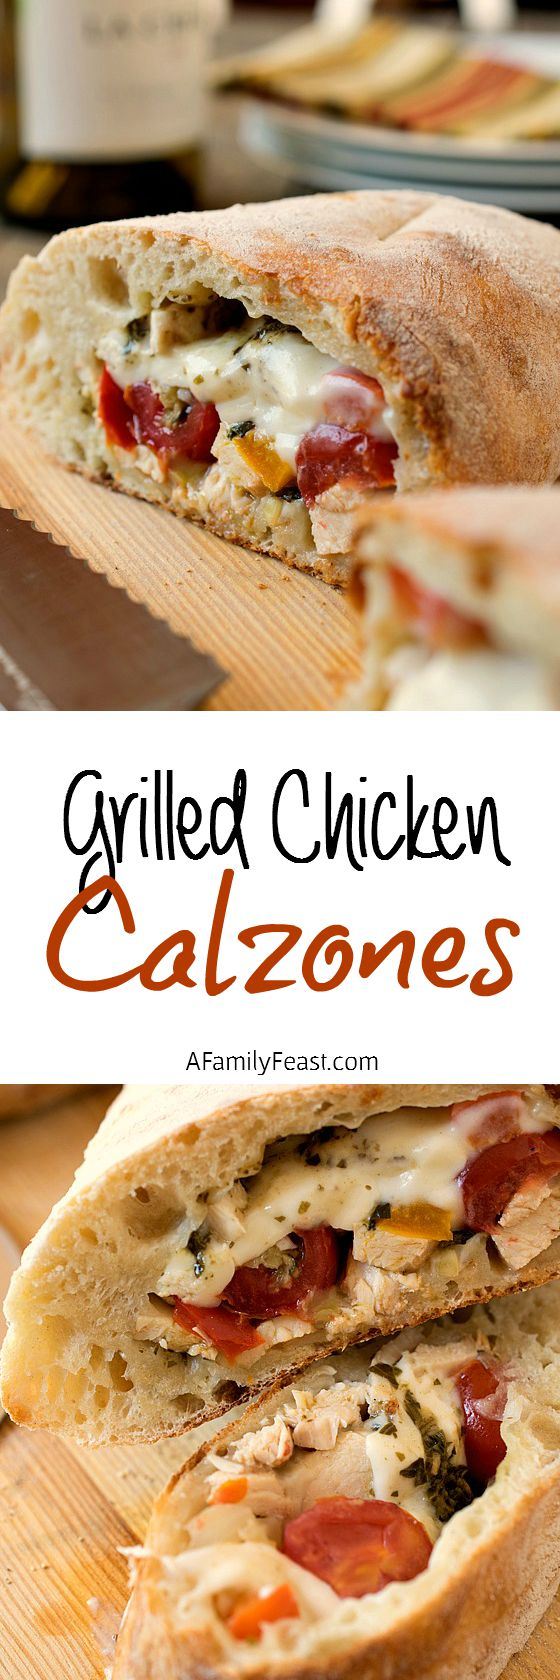 Grilled Chicken Calzones - Destined to become a family favorite! Pizza dough stuffed with grilled chicken, roasted red peppers, cheese and Béchamel. So easy and so delicious!